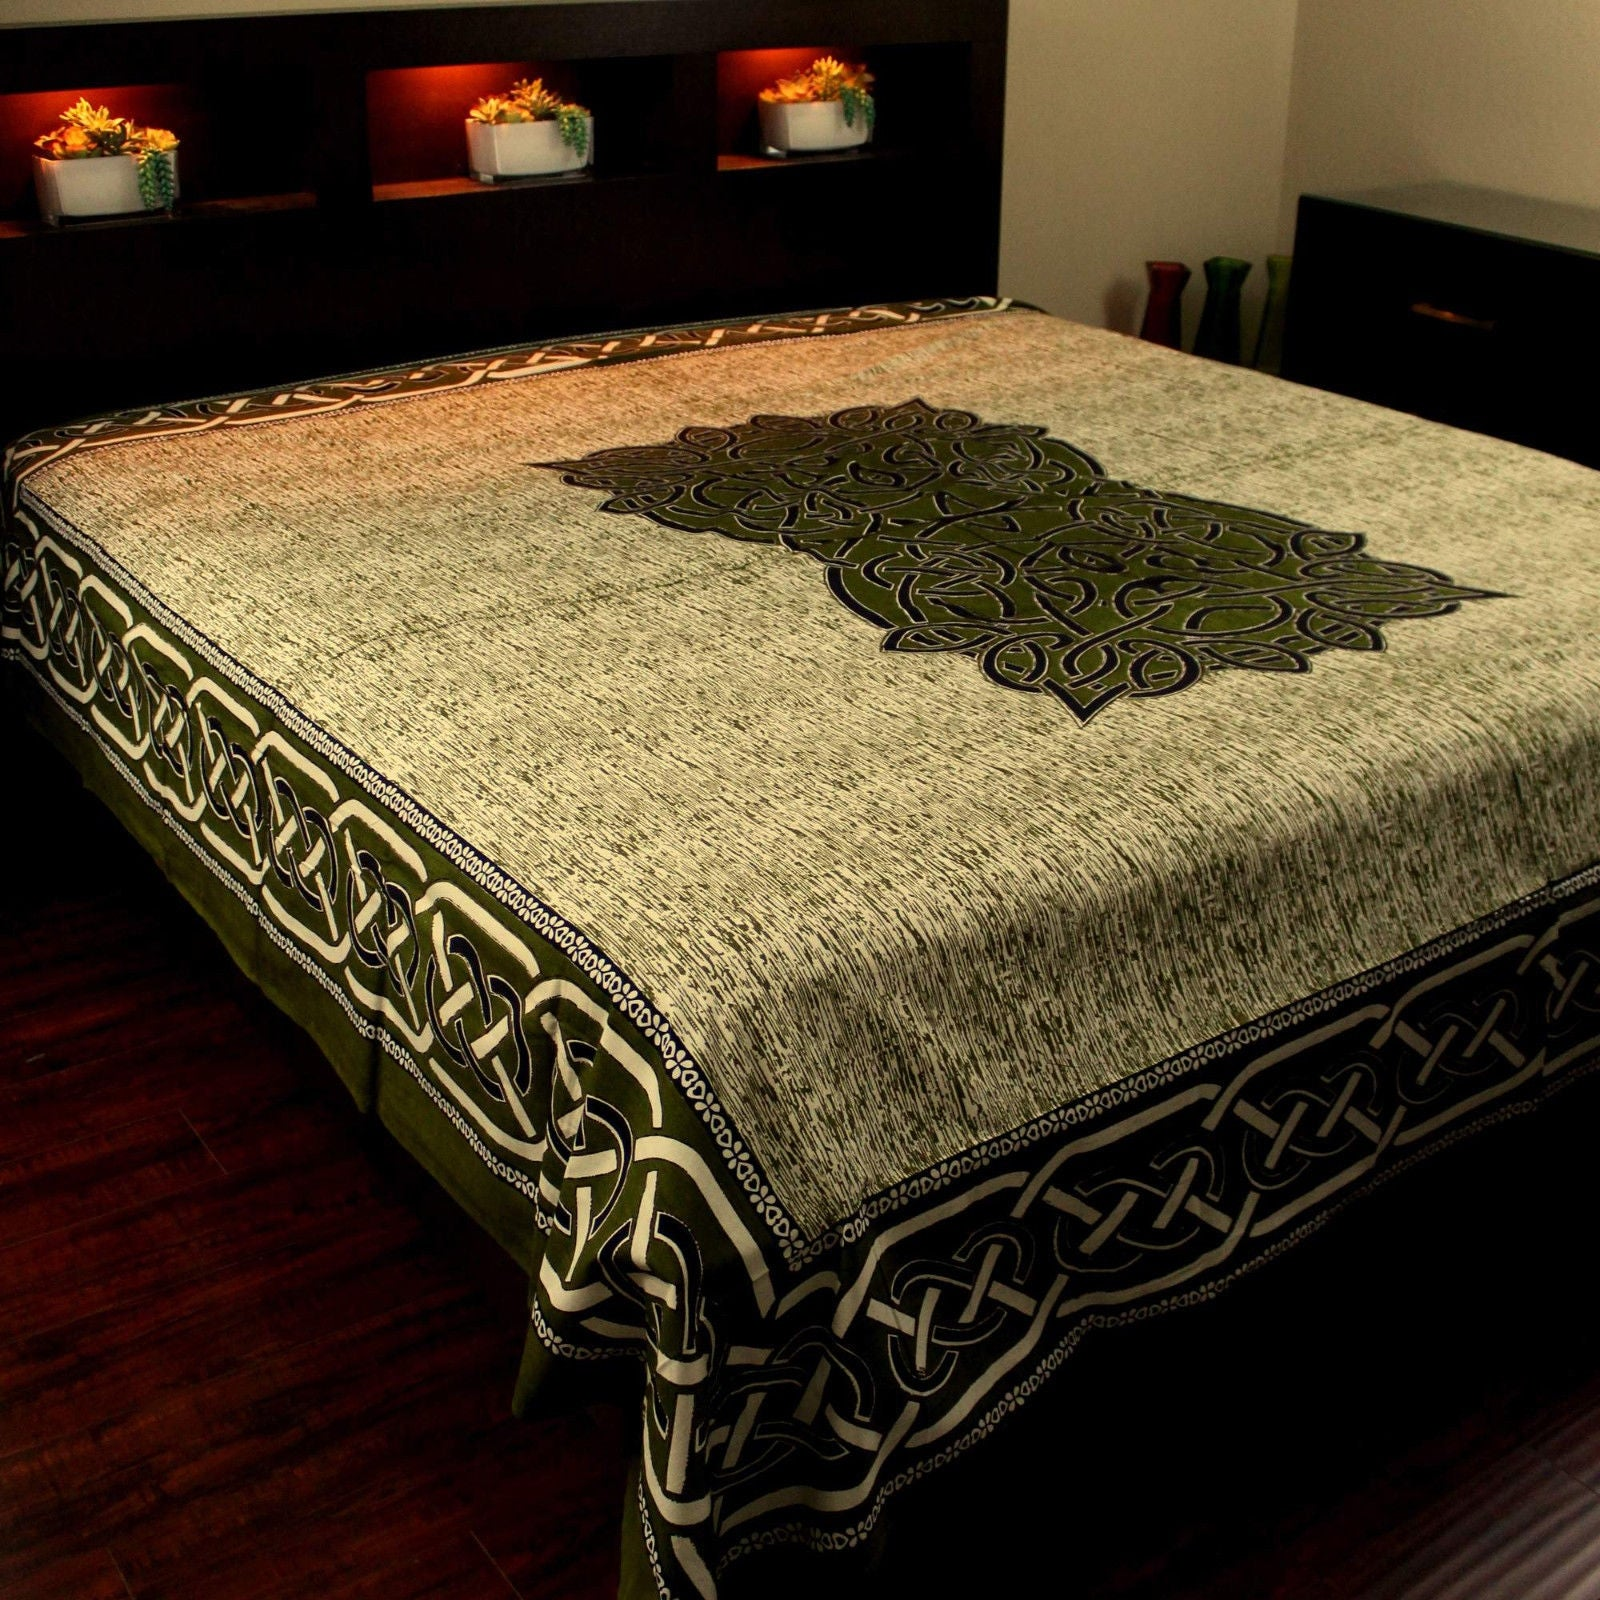 Picture of: Red Black Celtic Knot Indian Bedspread Queen Size Bedspreads Coverlets